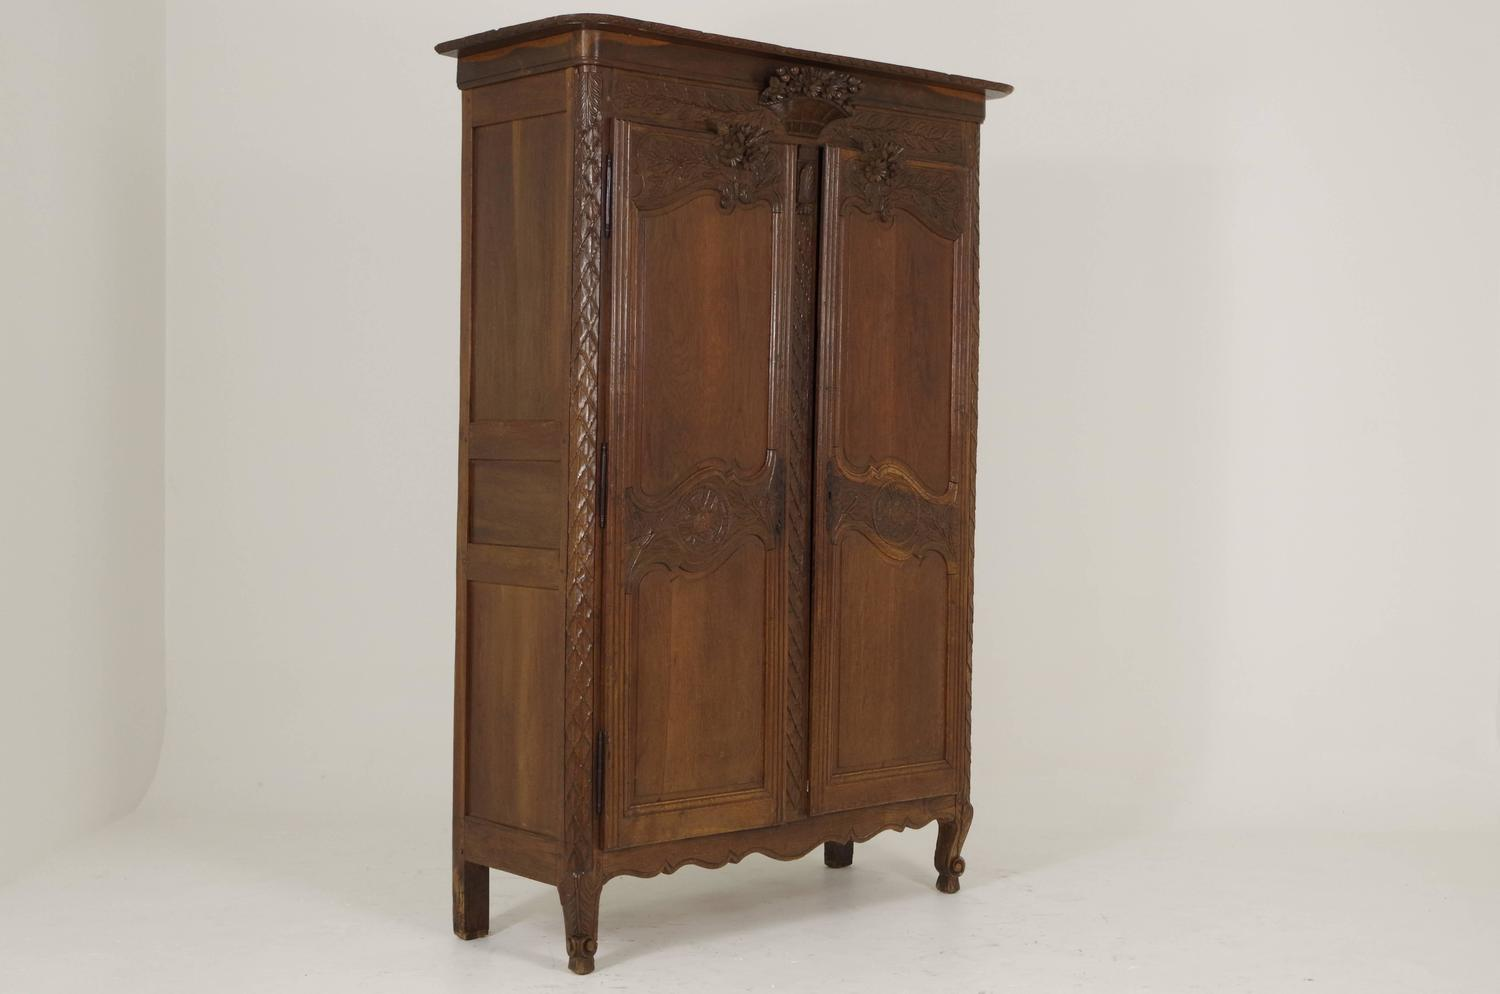 B239 Antique French Two Door Armoire Wardrobe 1850 For